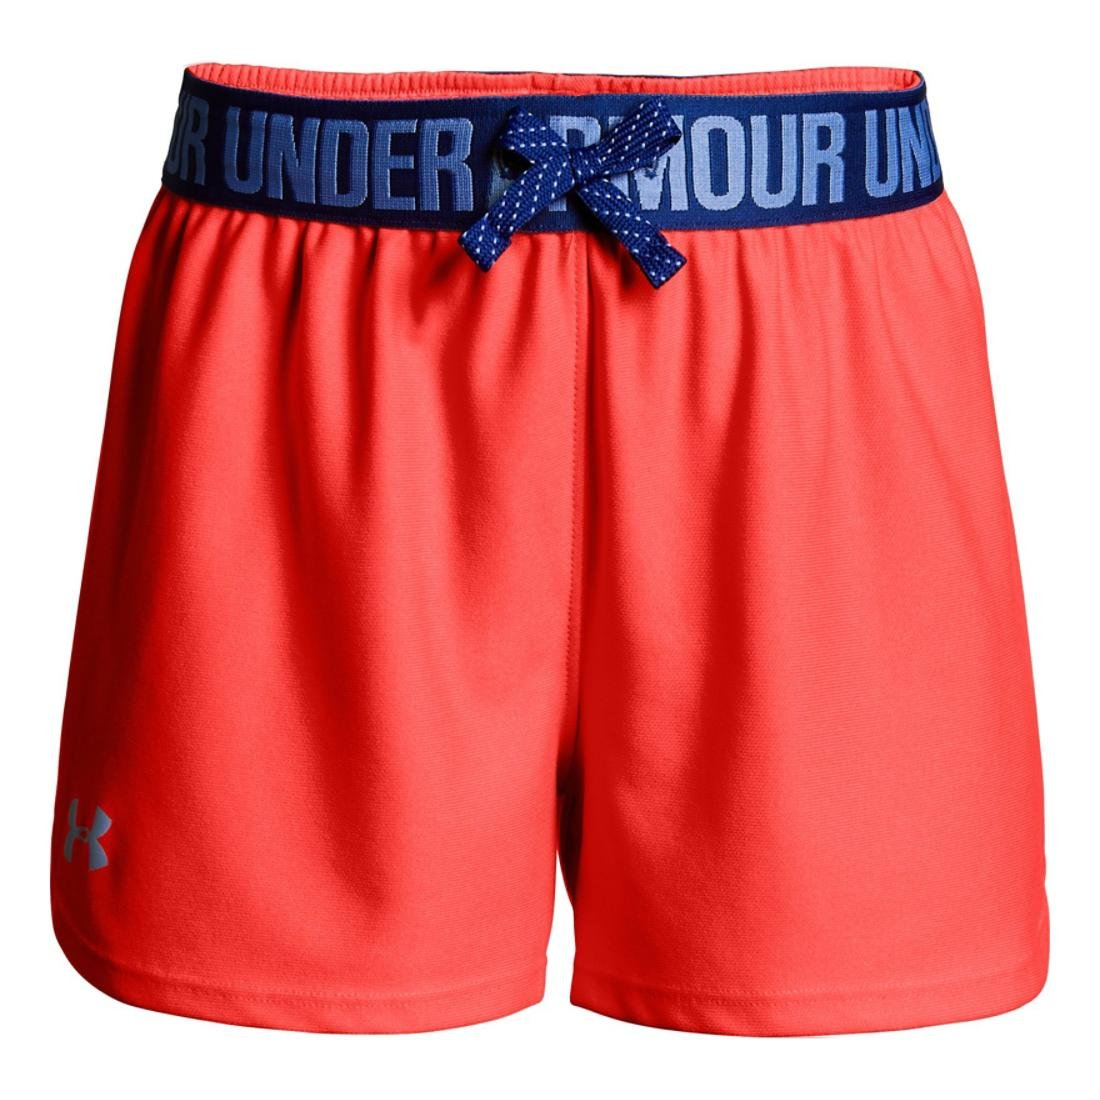 Under Armour Girls Play Up Short, Coral/Blue/Blue, YXS